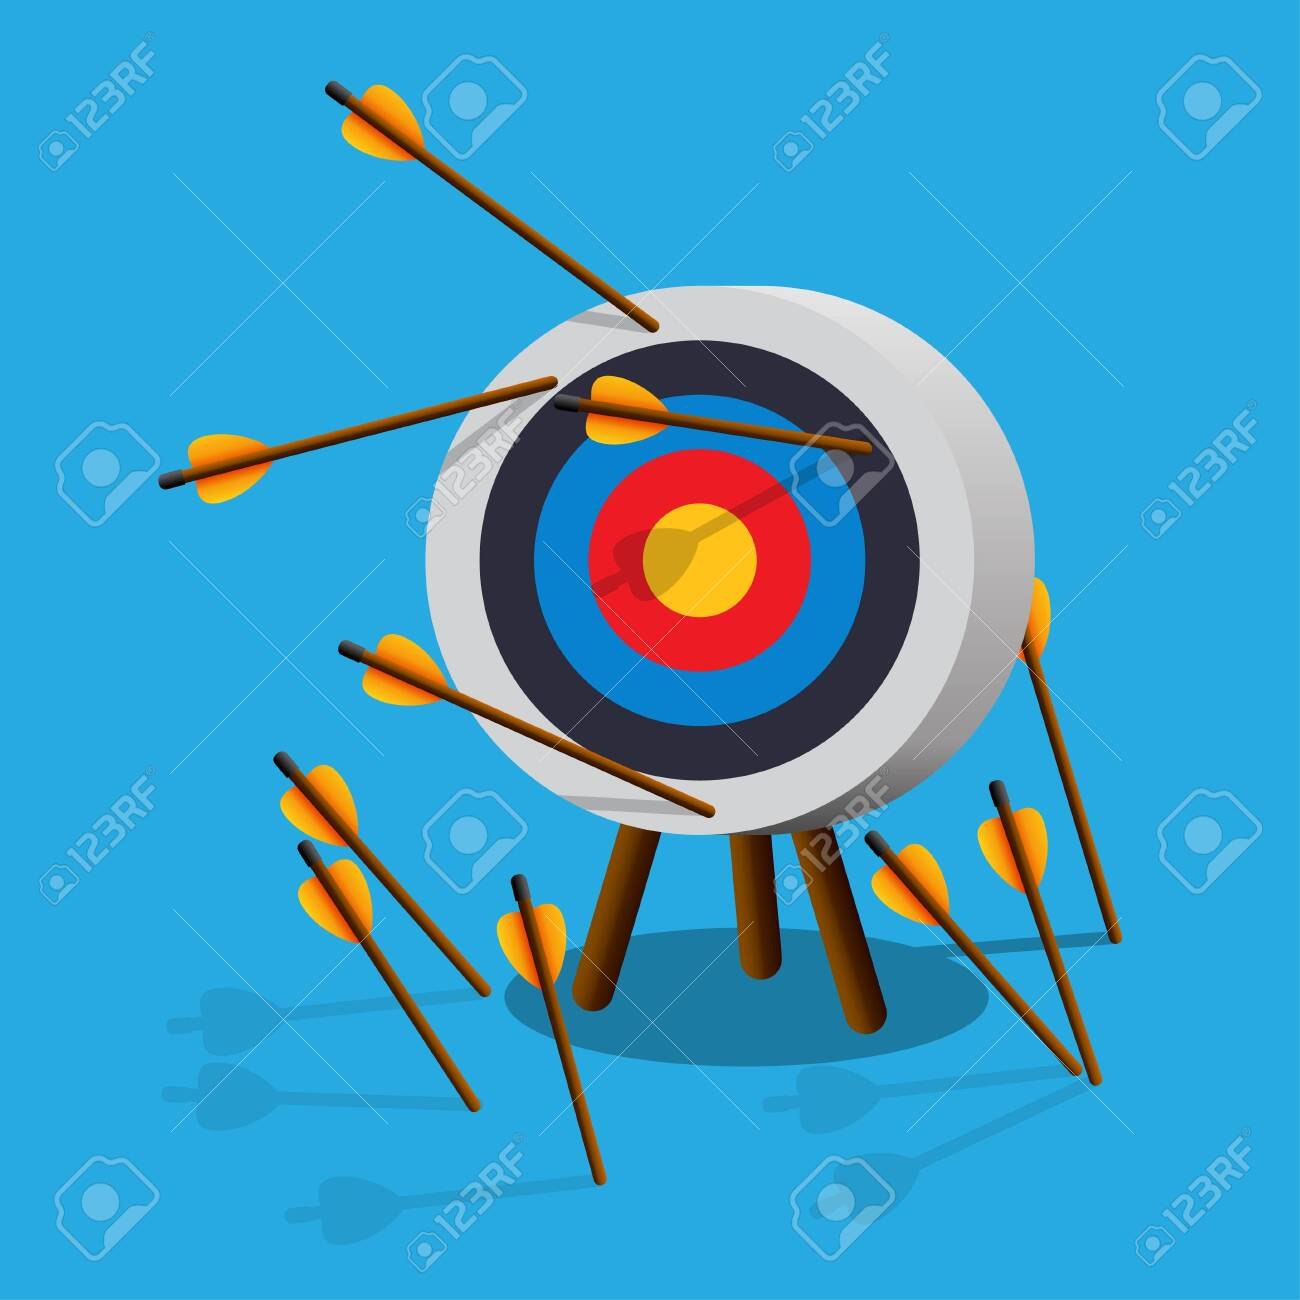 Arrows missing target.Failing to hit the target.Vector illustration. - 132895347